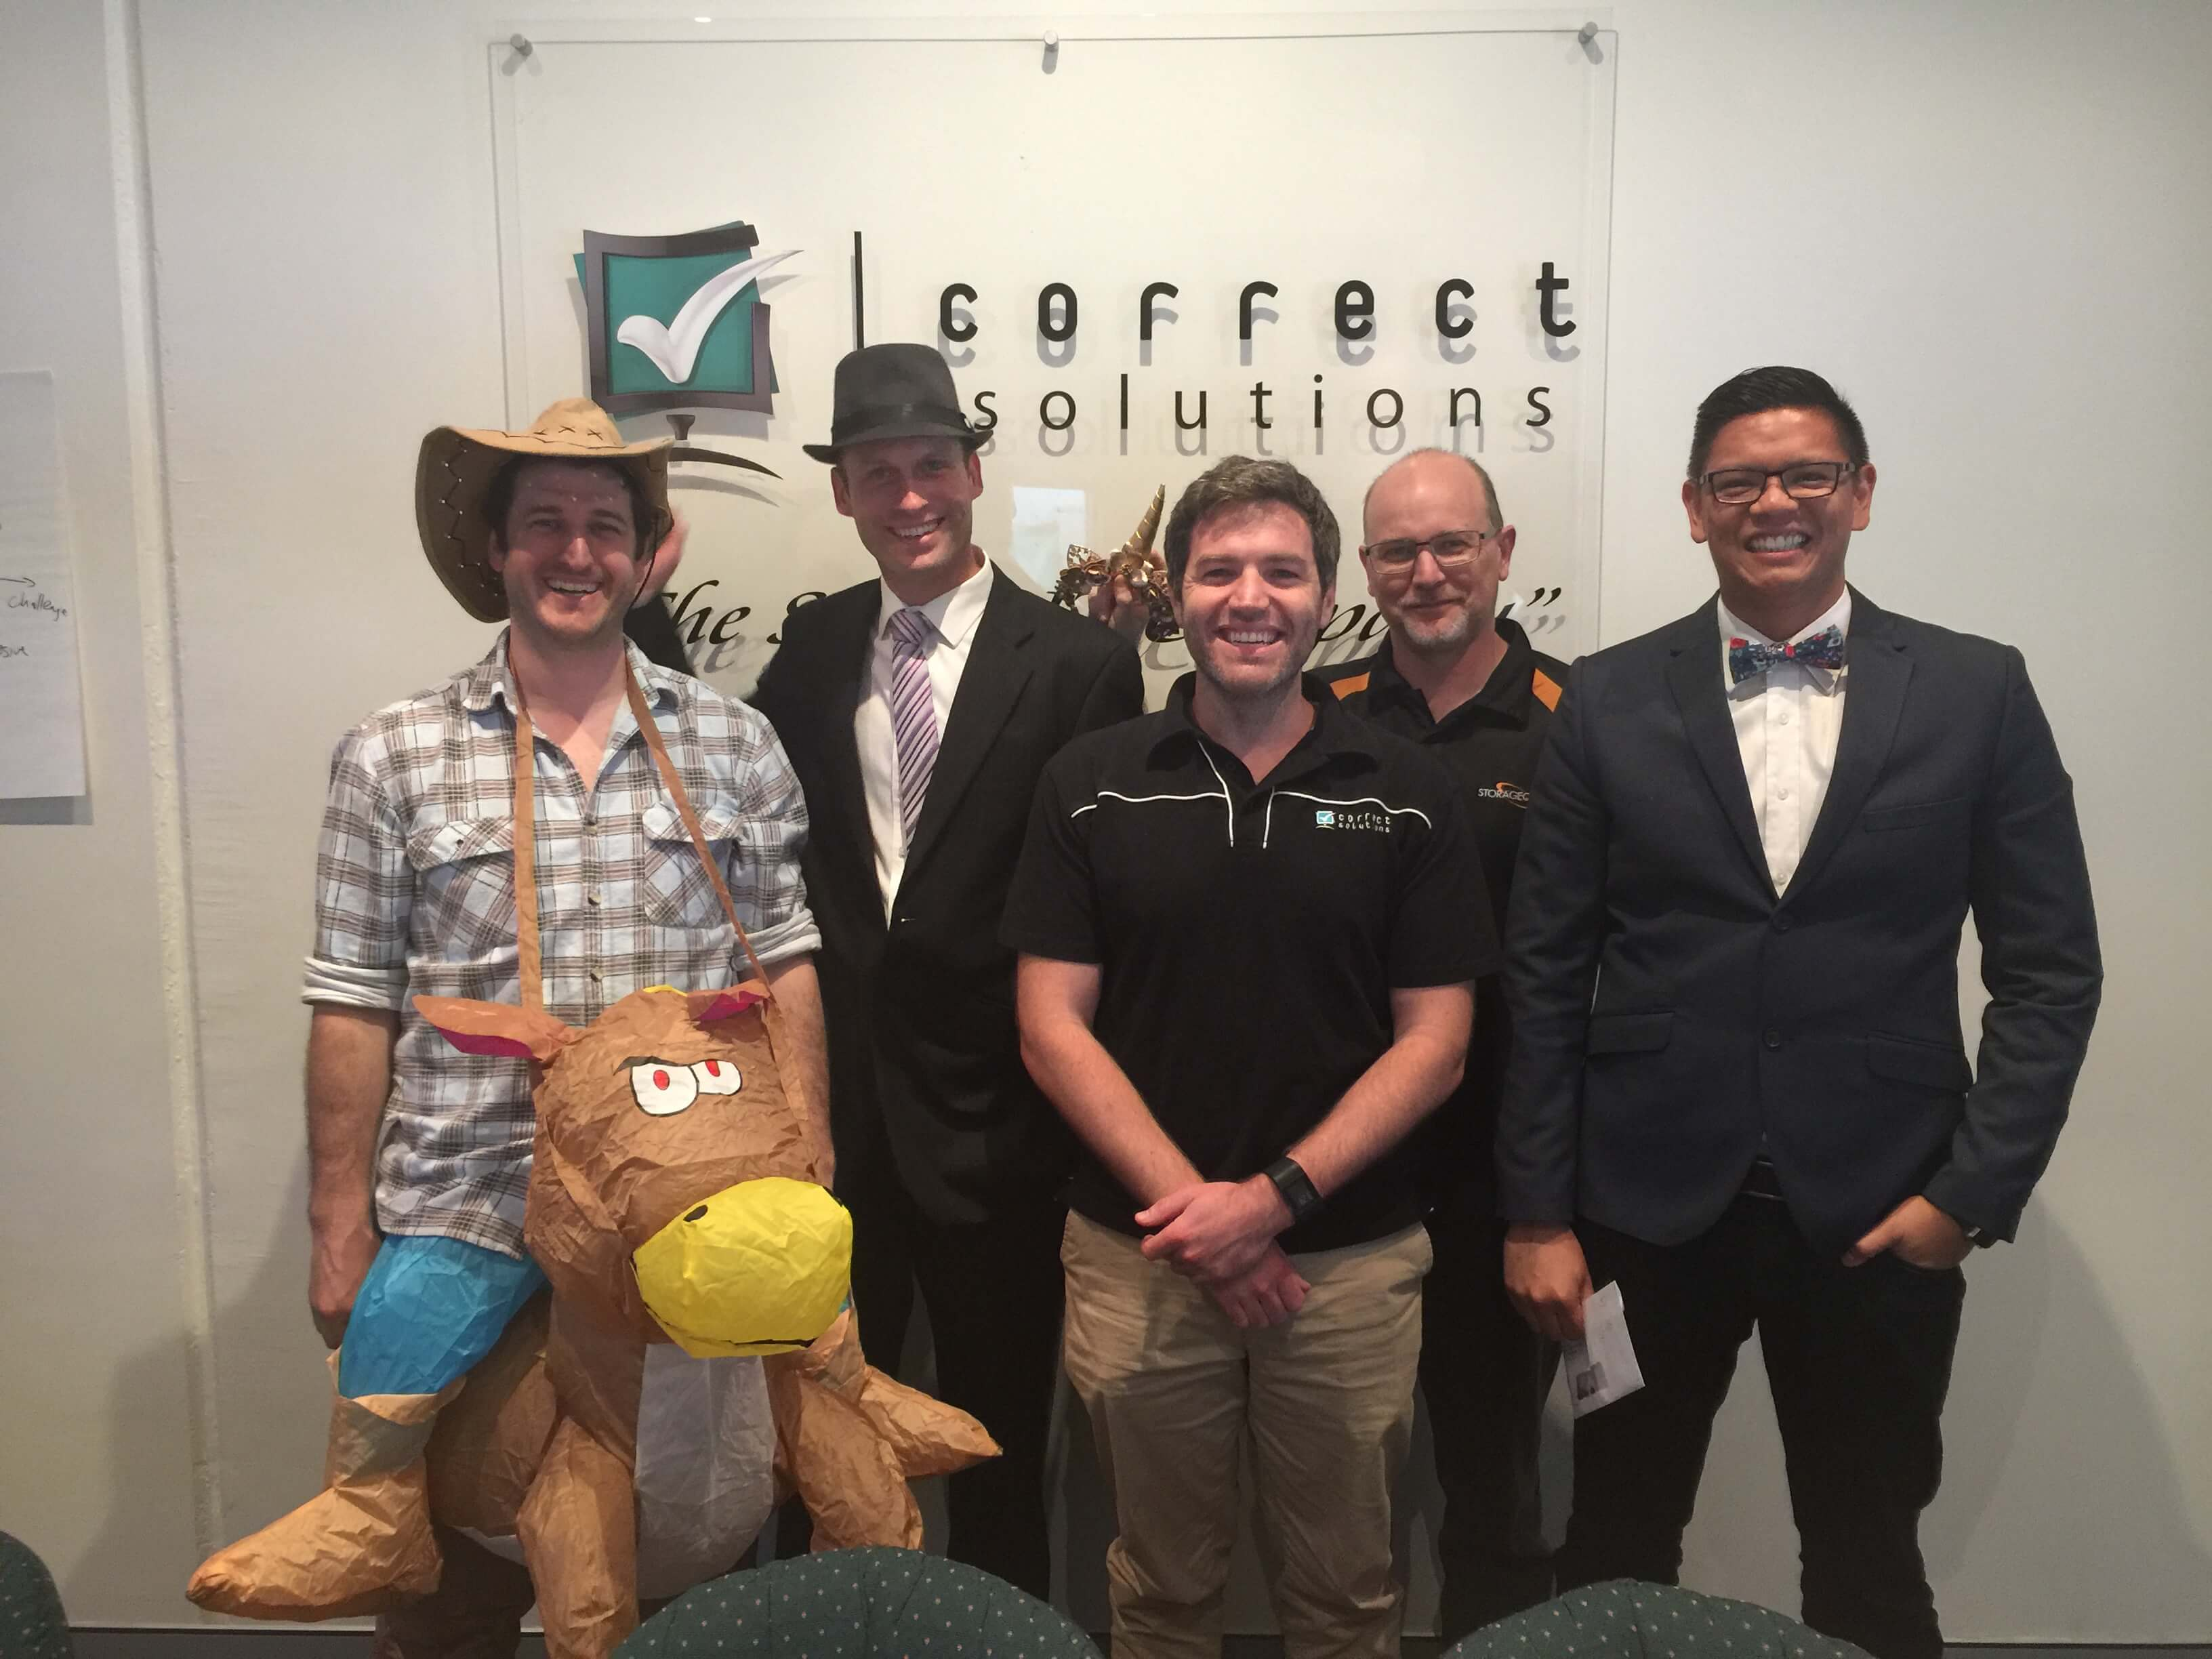 Correct Solutions team at Melbourne Cup